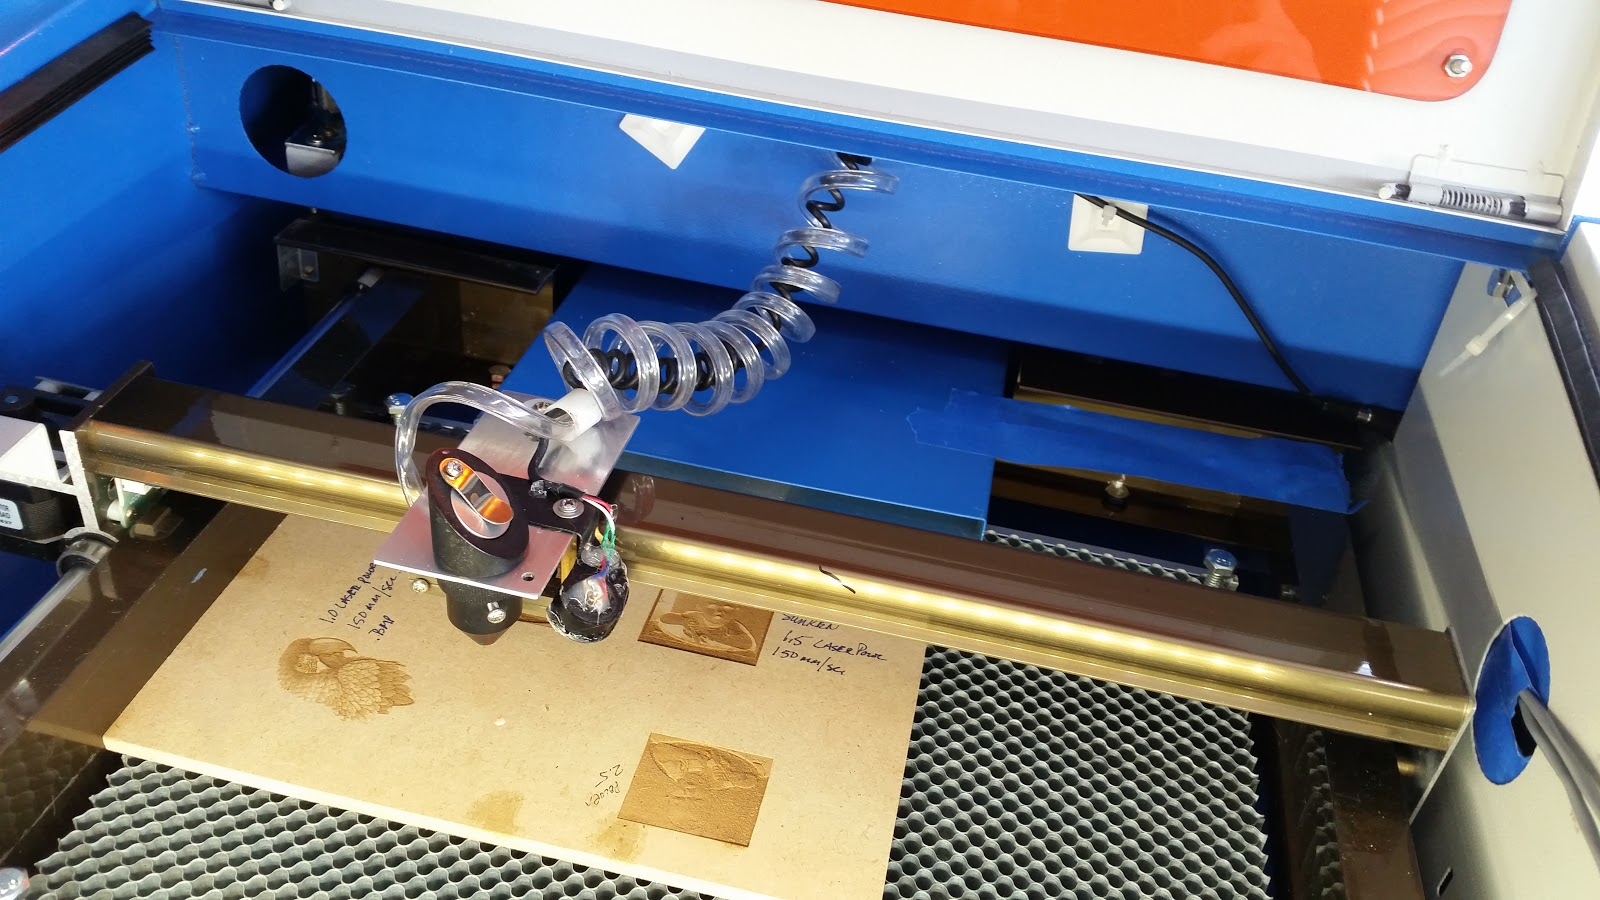 Don's Laser Cutter Things: K40 Air Systems